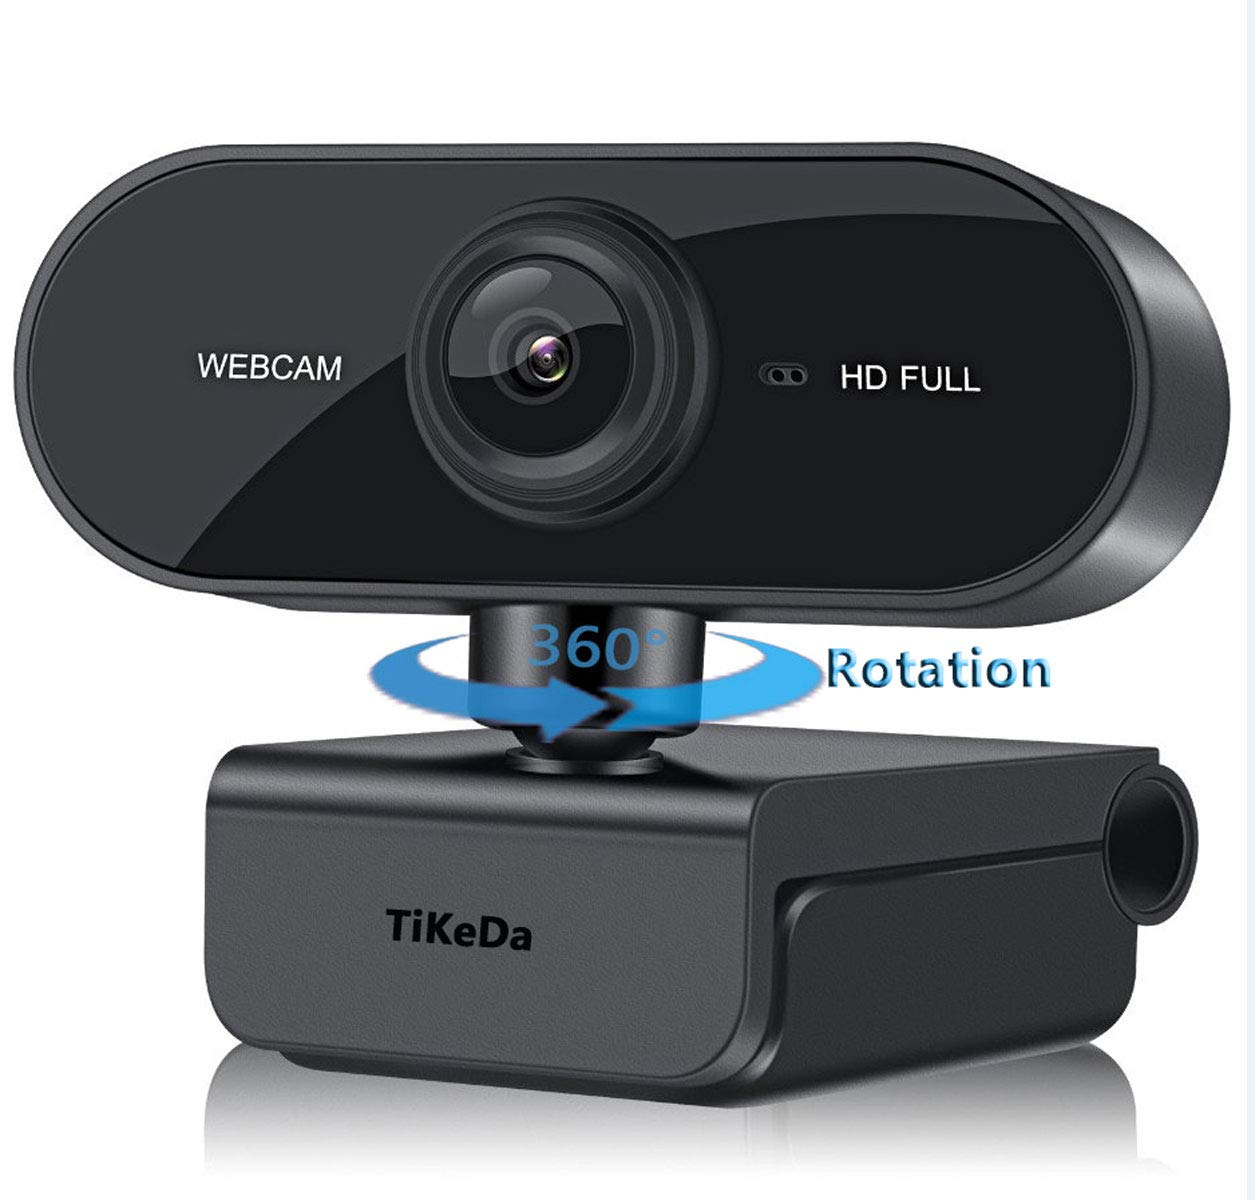 TiKeDa 1080P Webcam with Microphone & 360° Rotation Clip,110-degree Wide Angle HD Auto Focus,Dual Stereo Mics, Widescreen USB Camera for PC/Mac Laptop/Desktop Streaming Video Calling Recording Confere